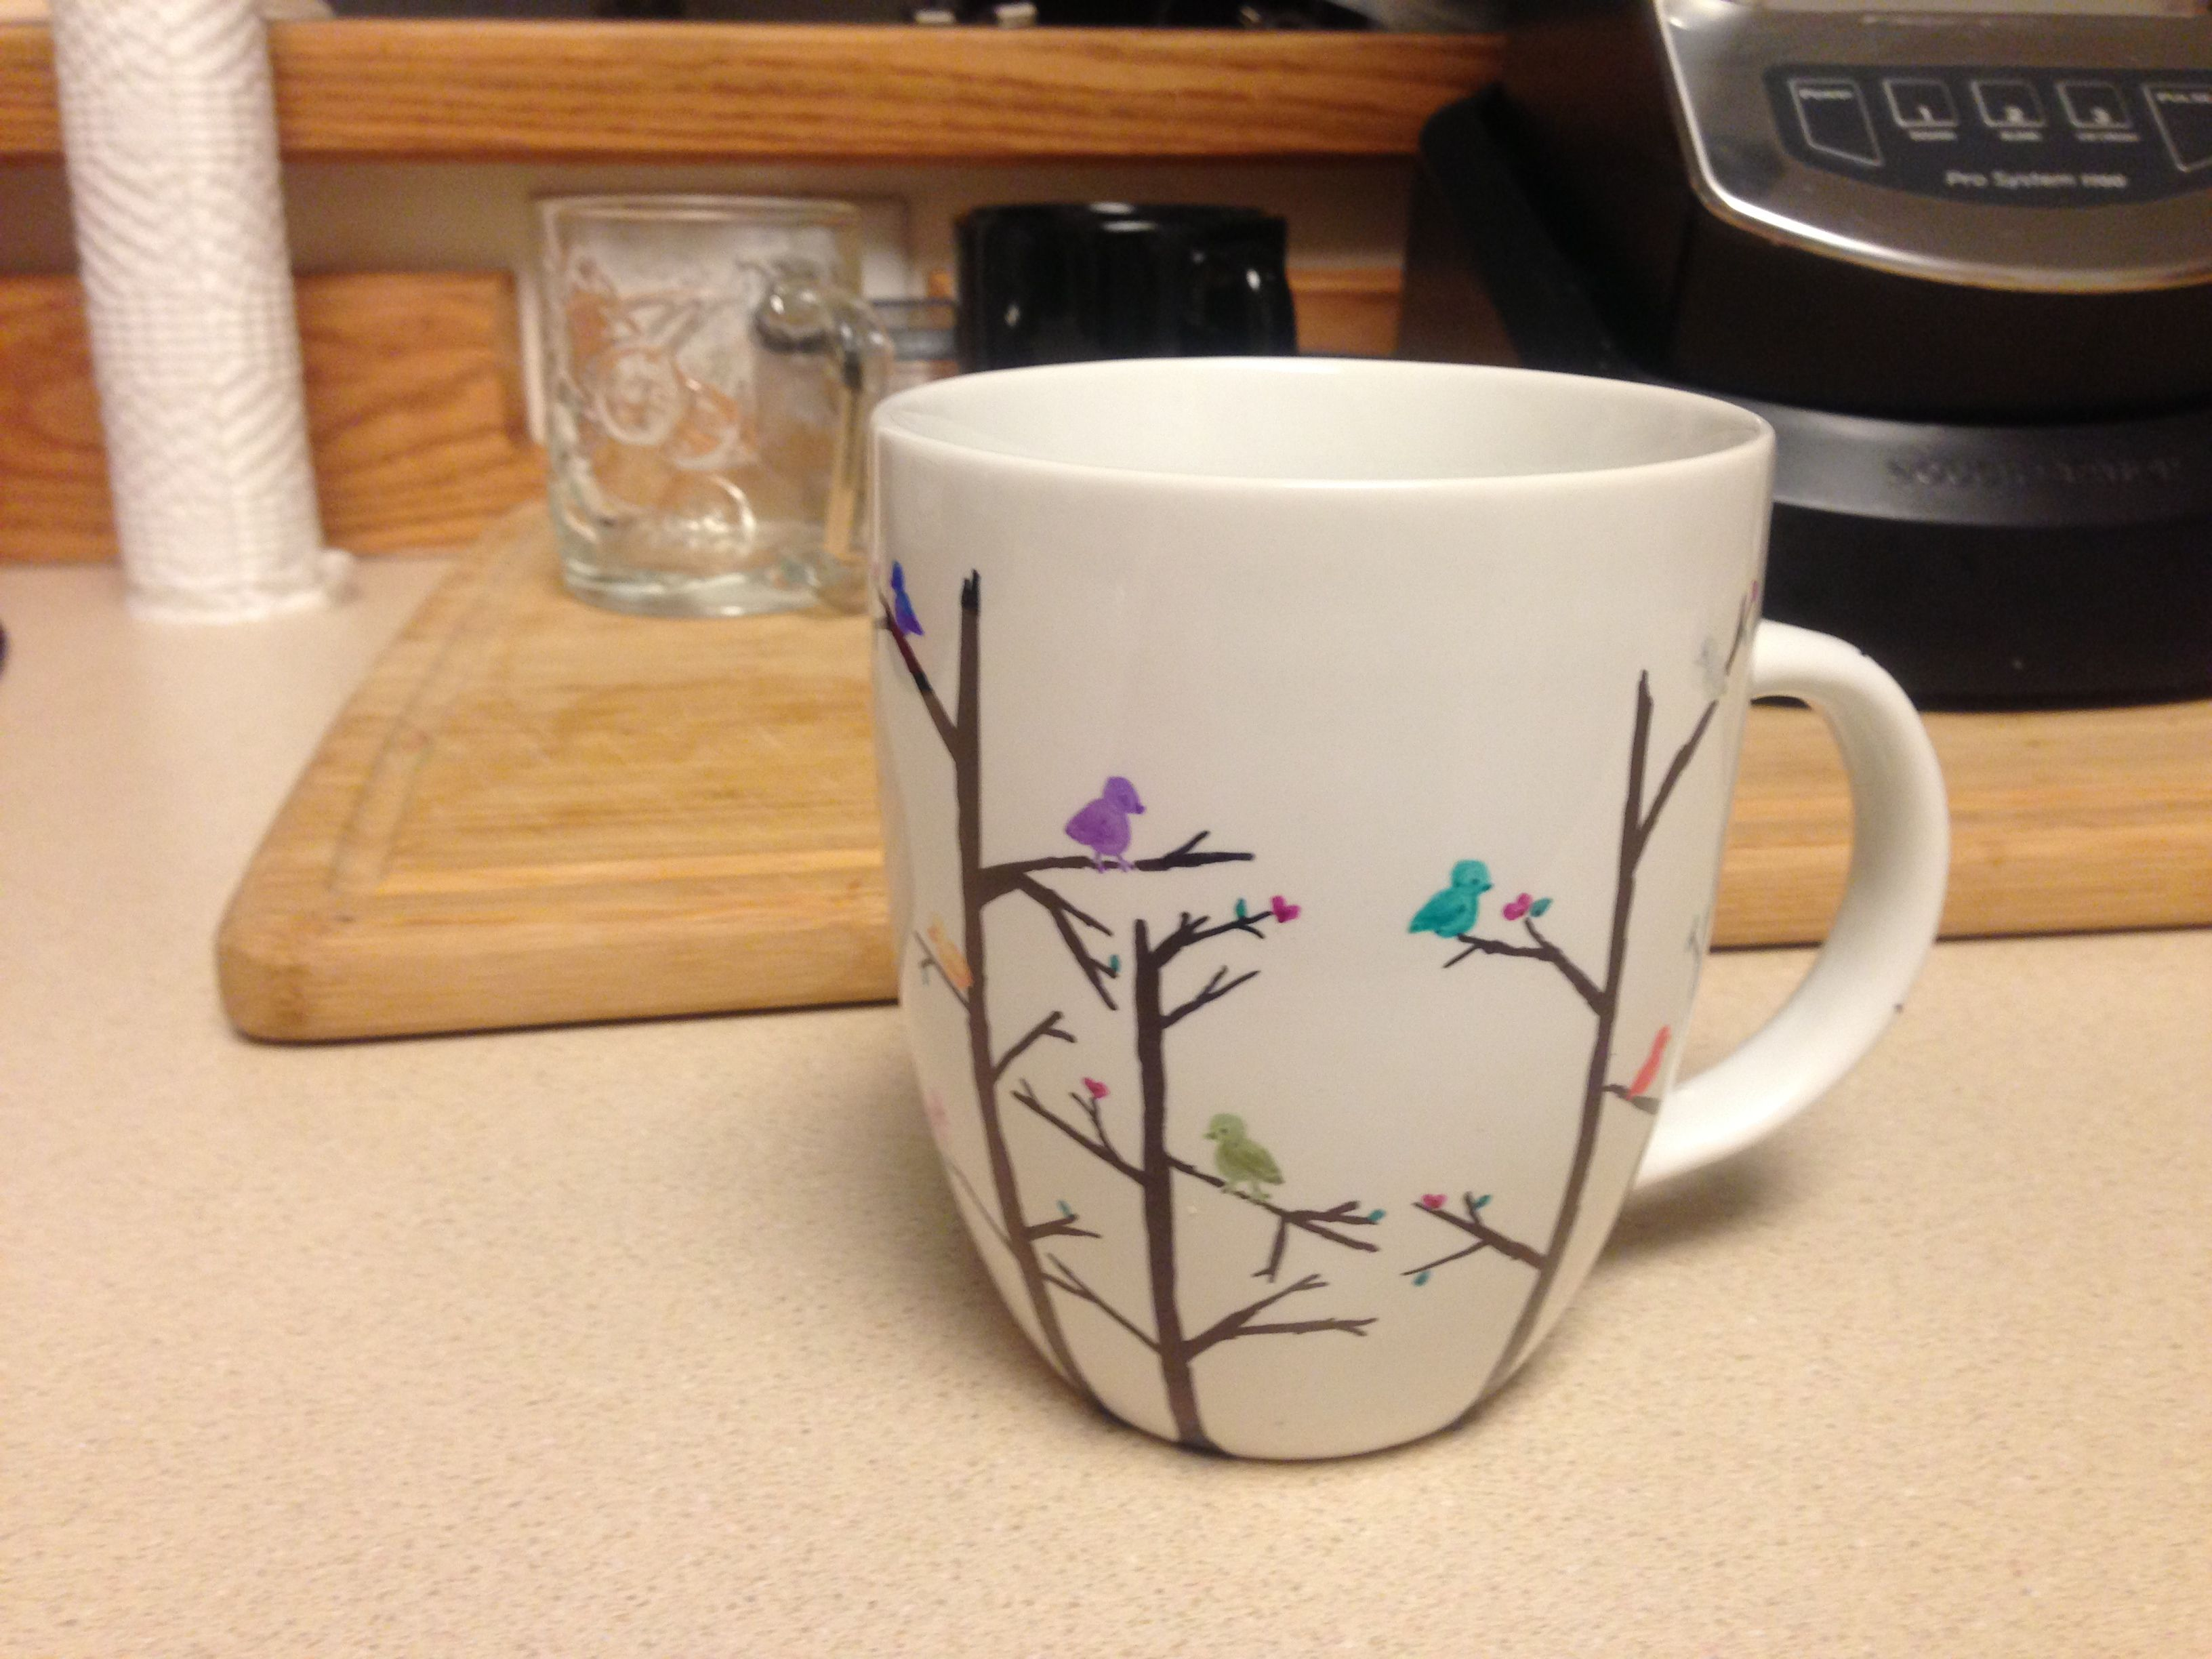 Colored Sharpie design on 5 white mug from Target, bake